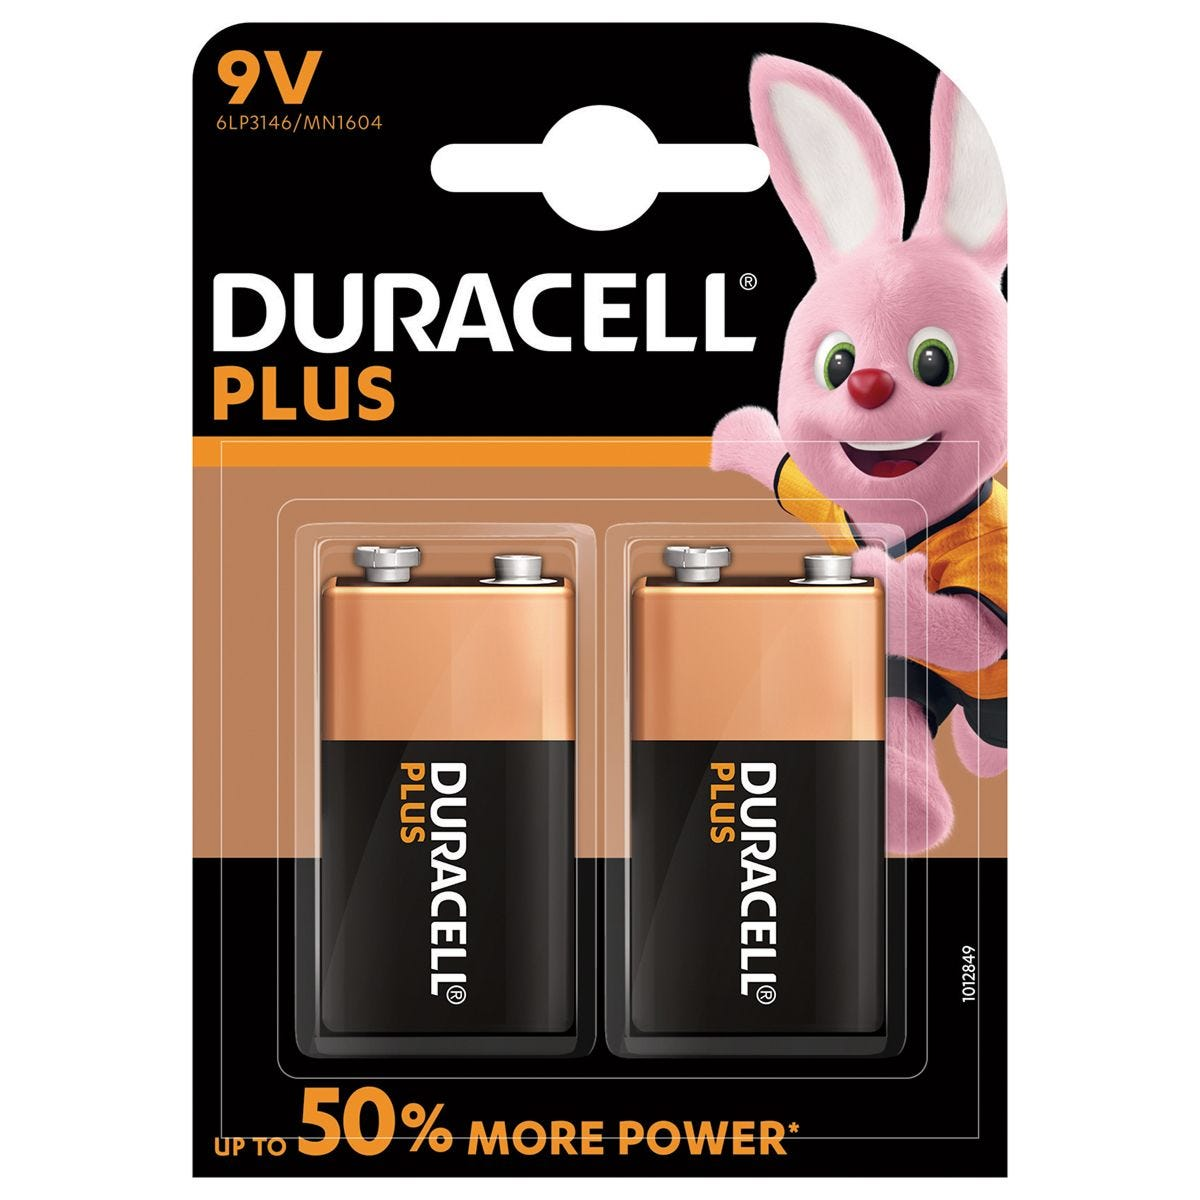 Duracell Plus Batteries 9V - 2 Pack